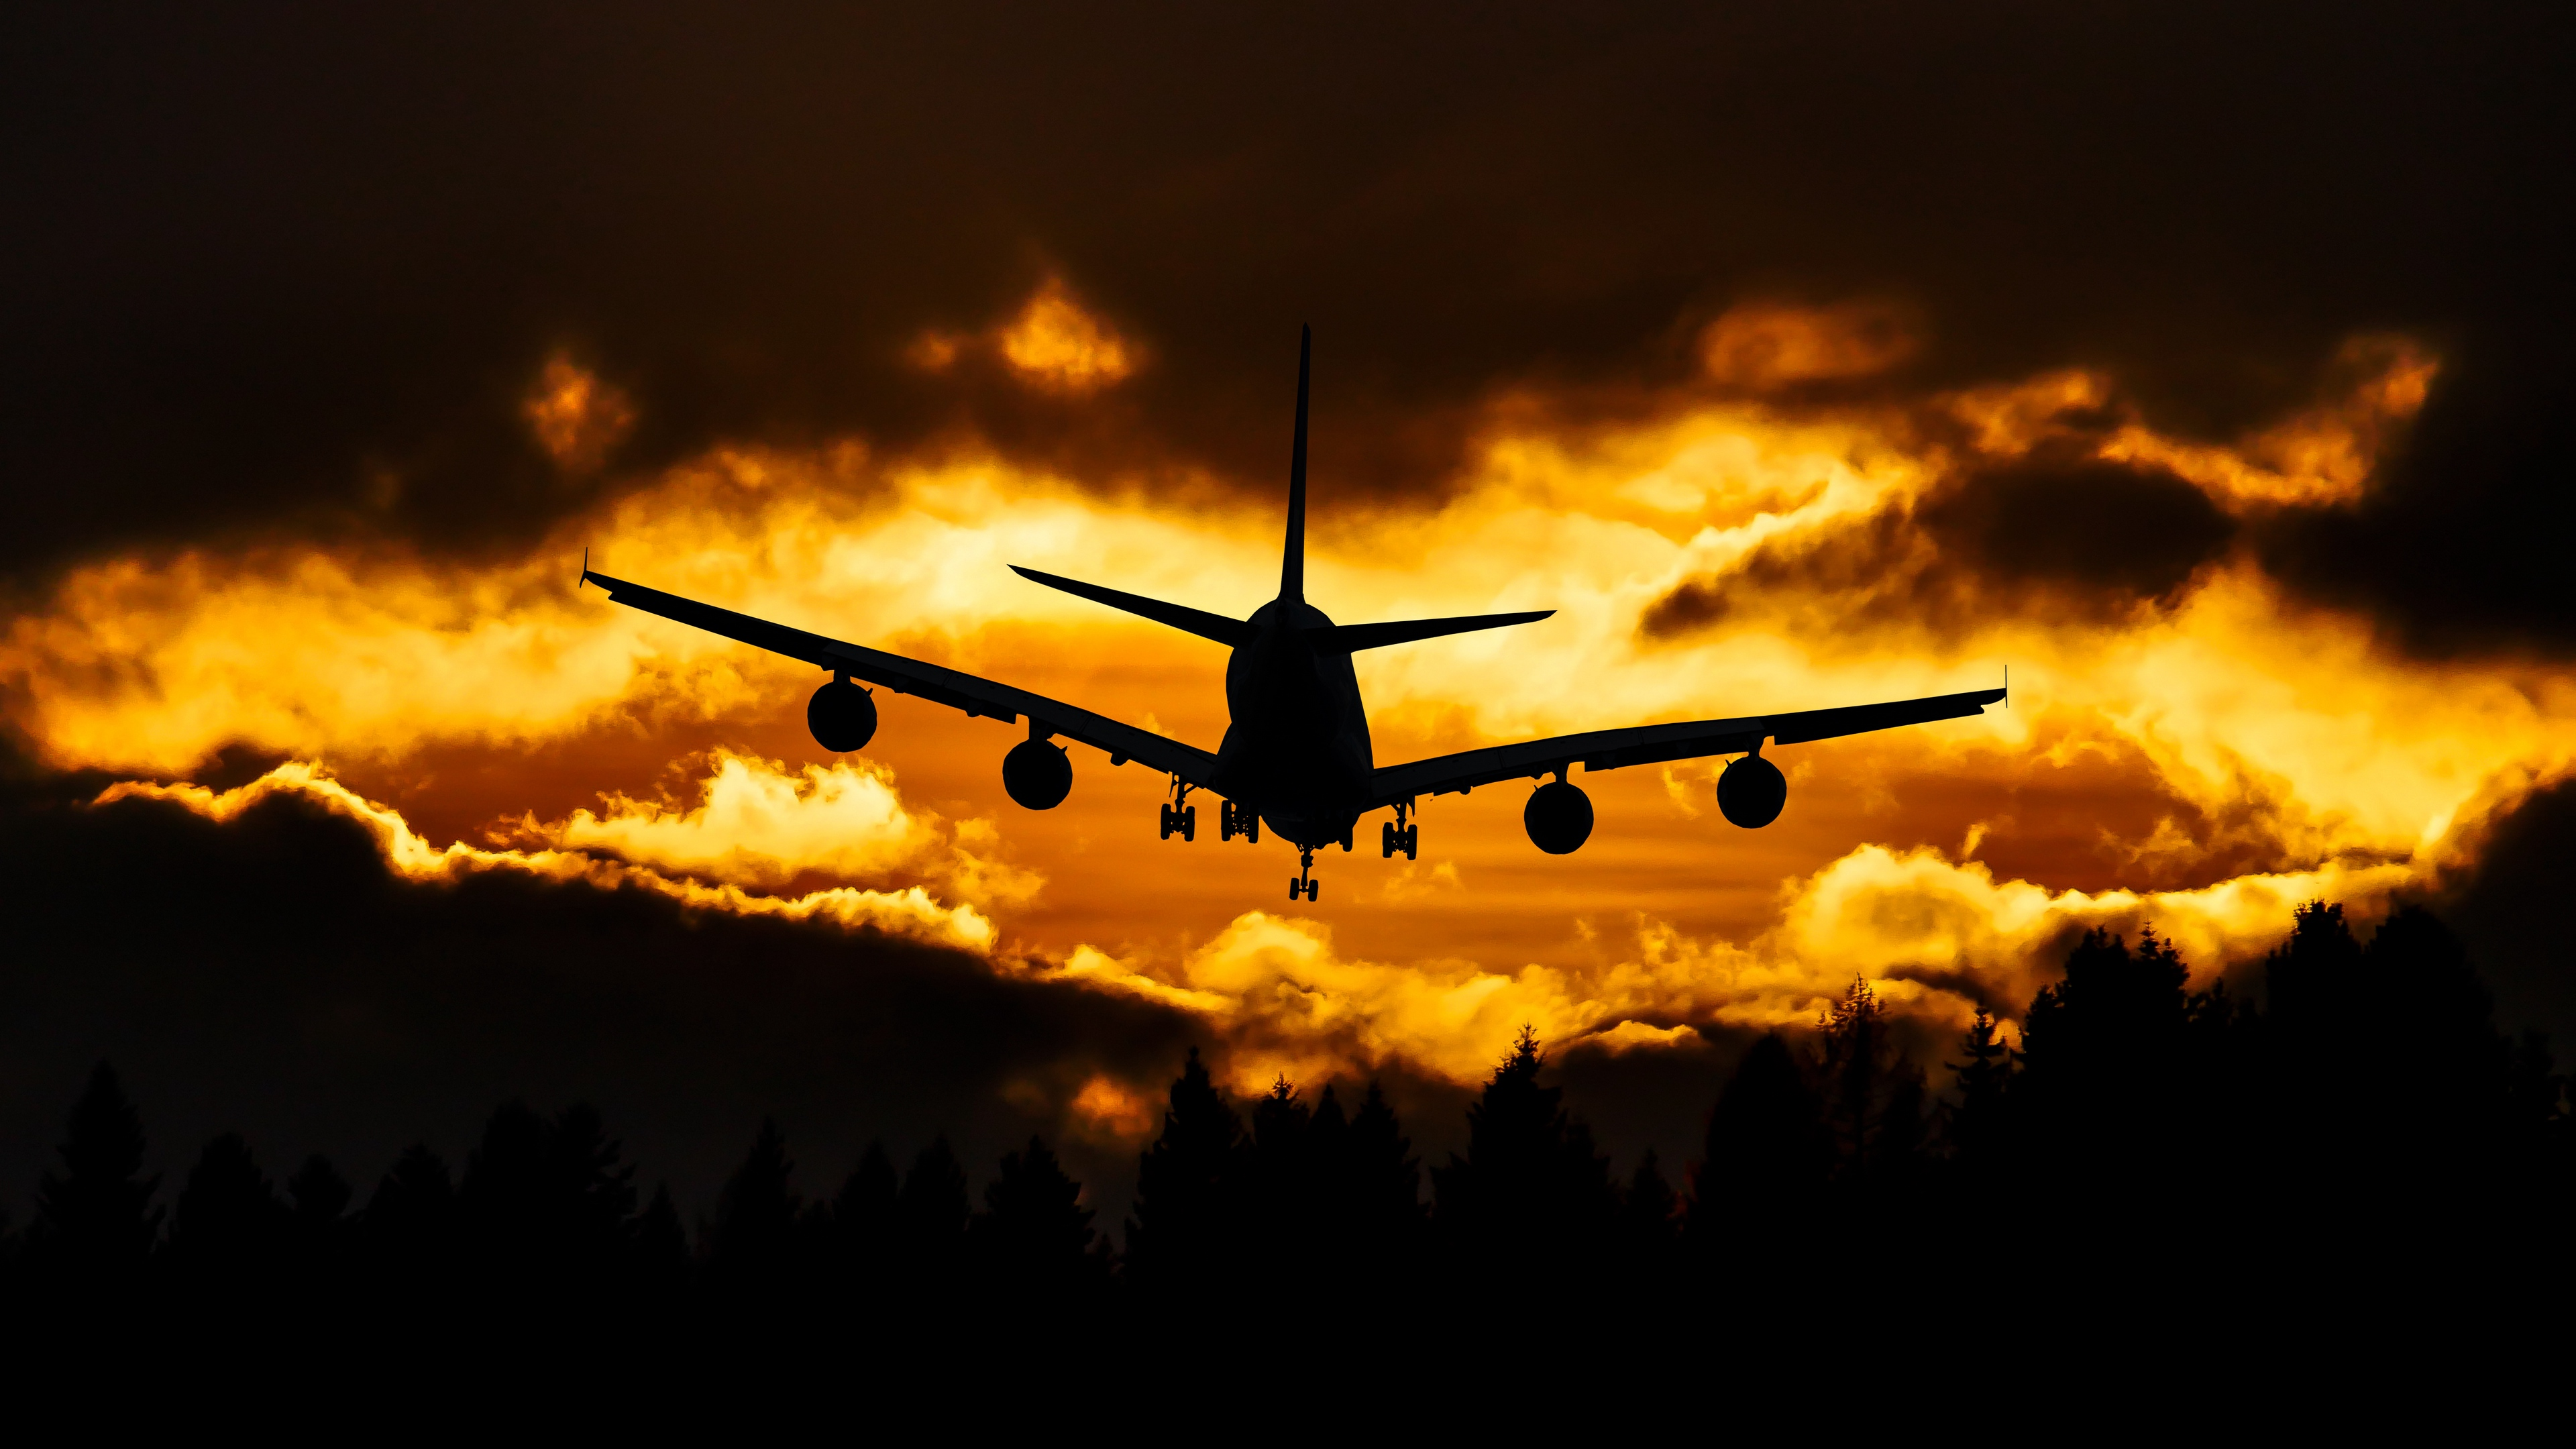 airplane clouds sky sunset 4k 1540574739 - airplane, clouds, sky, sunset 4k - Sky, Clouds, Airplane